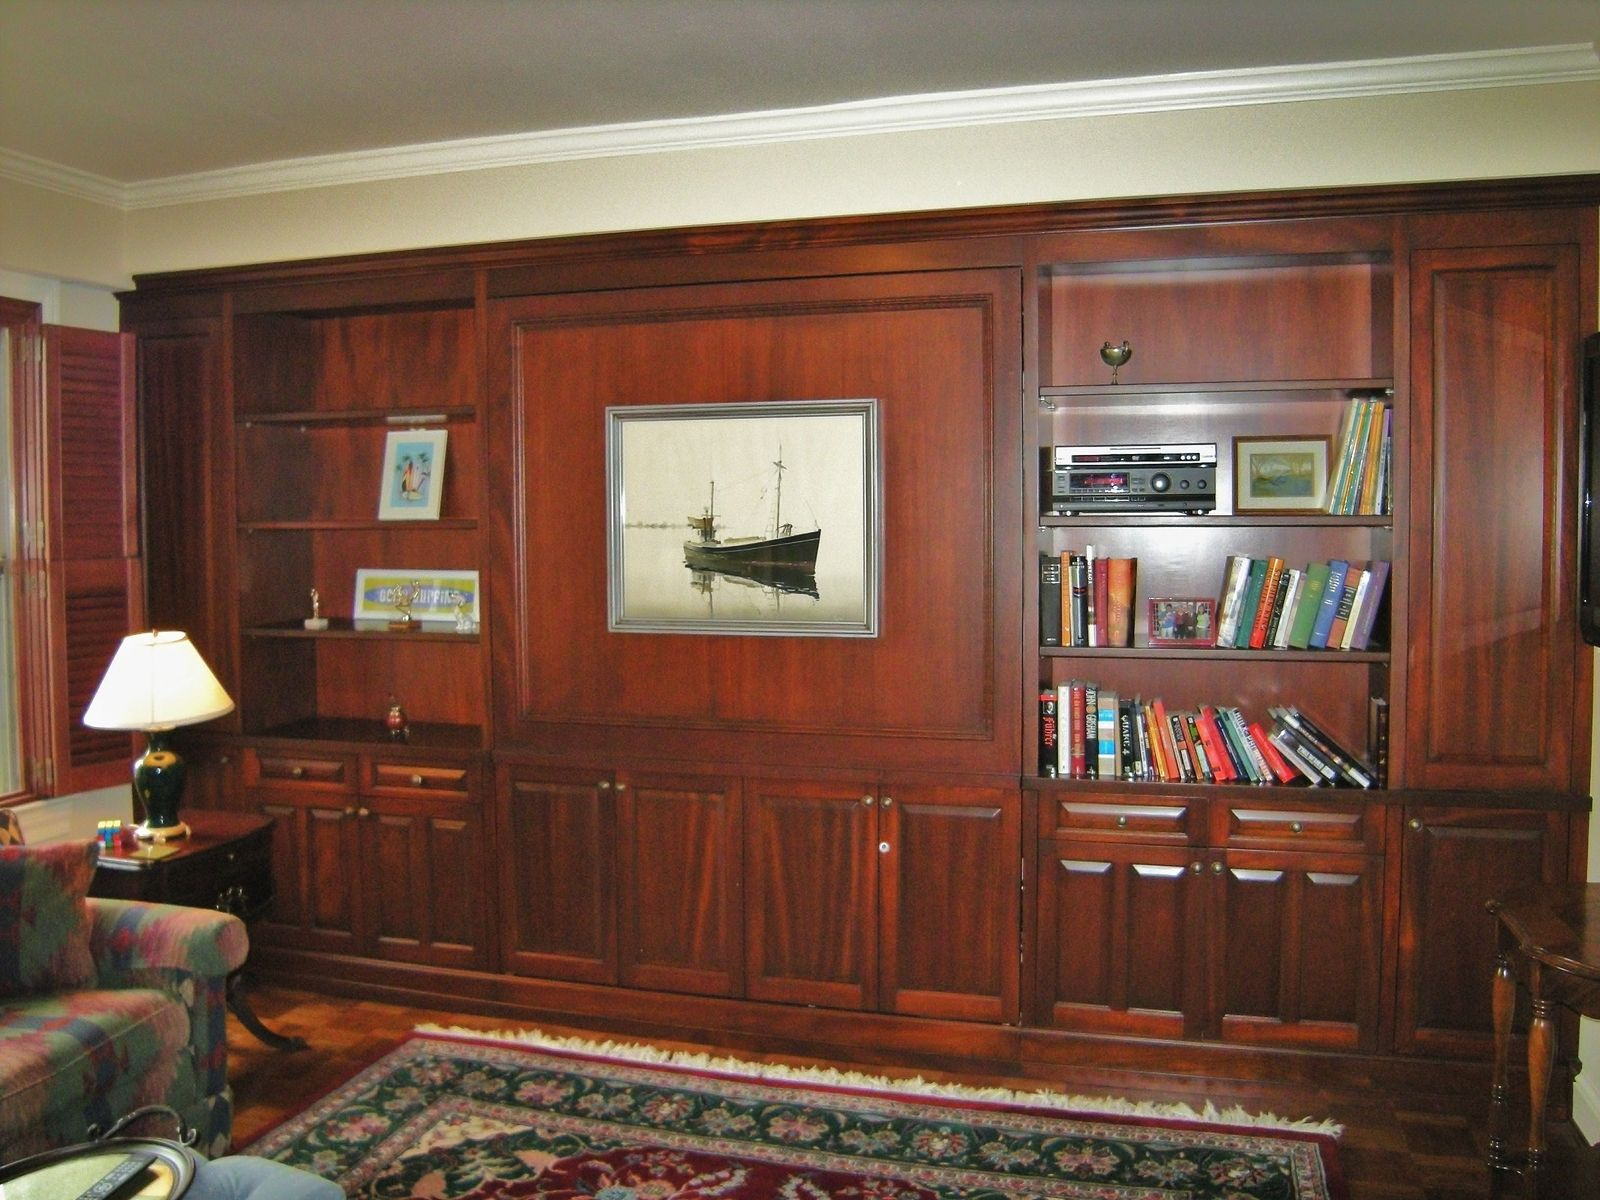 Custom BuiltIn Murphy Bed And Shelving by Baynes Quality